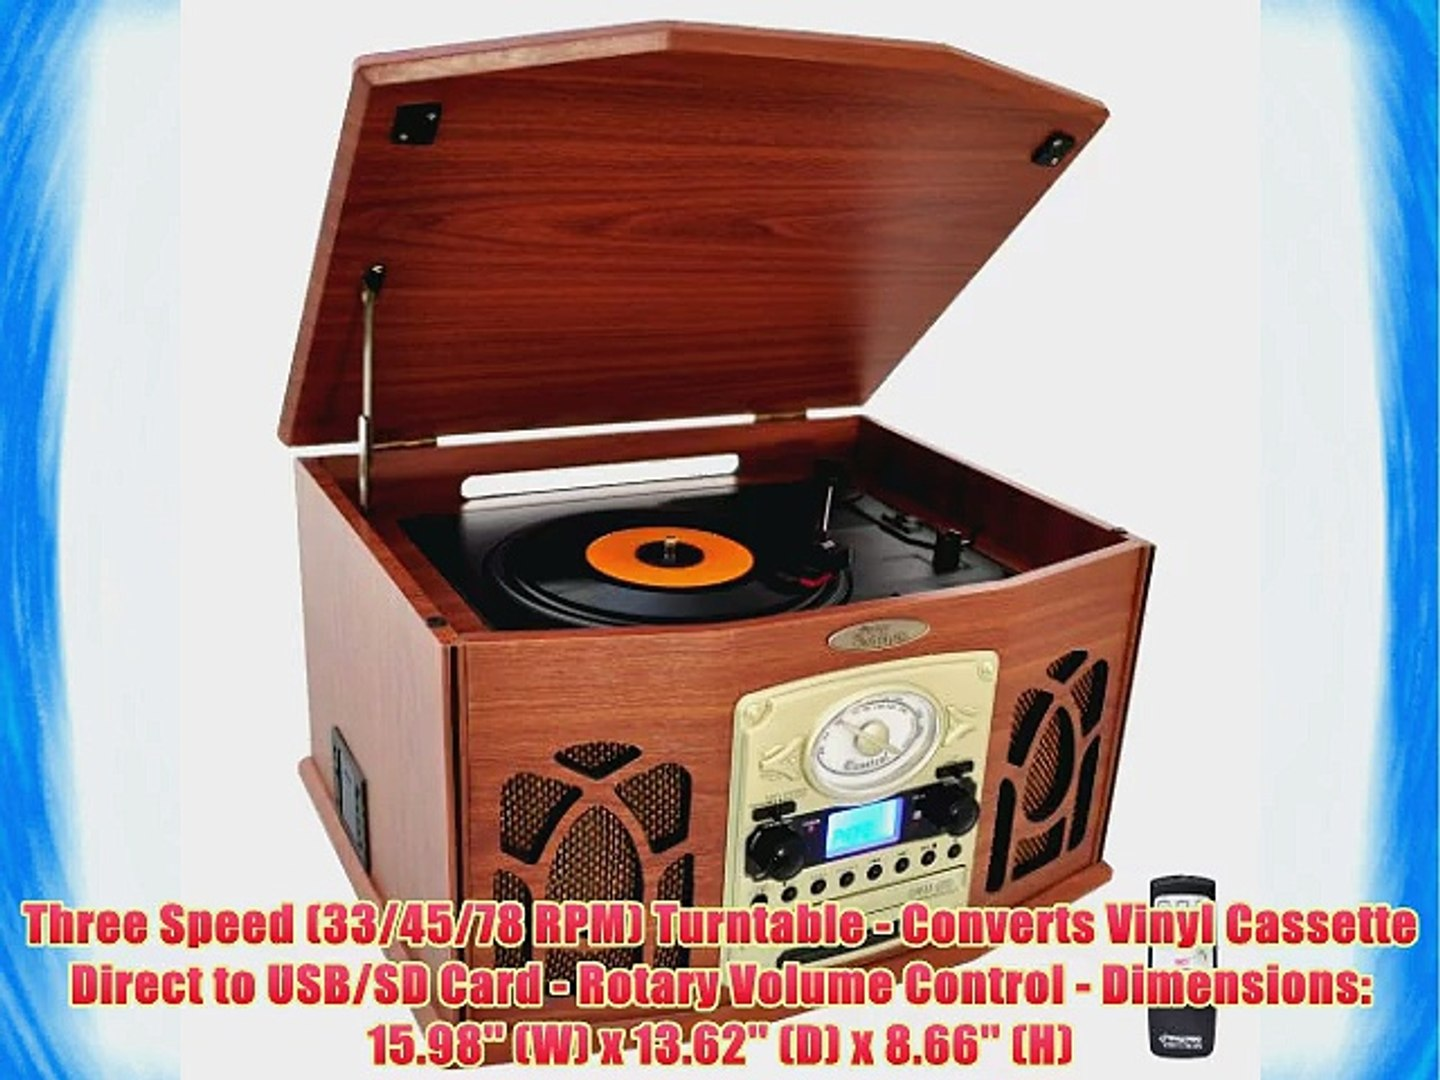 Pyle Home PTCDS7UIW Retro Vintage Turntable with CD/MP3/Casette/Radio/USB/SD Aux-In and Vinyl-to-MP3